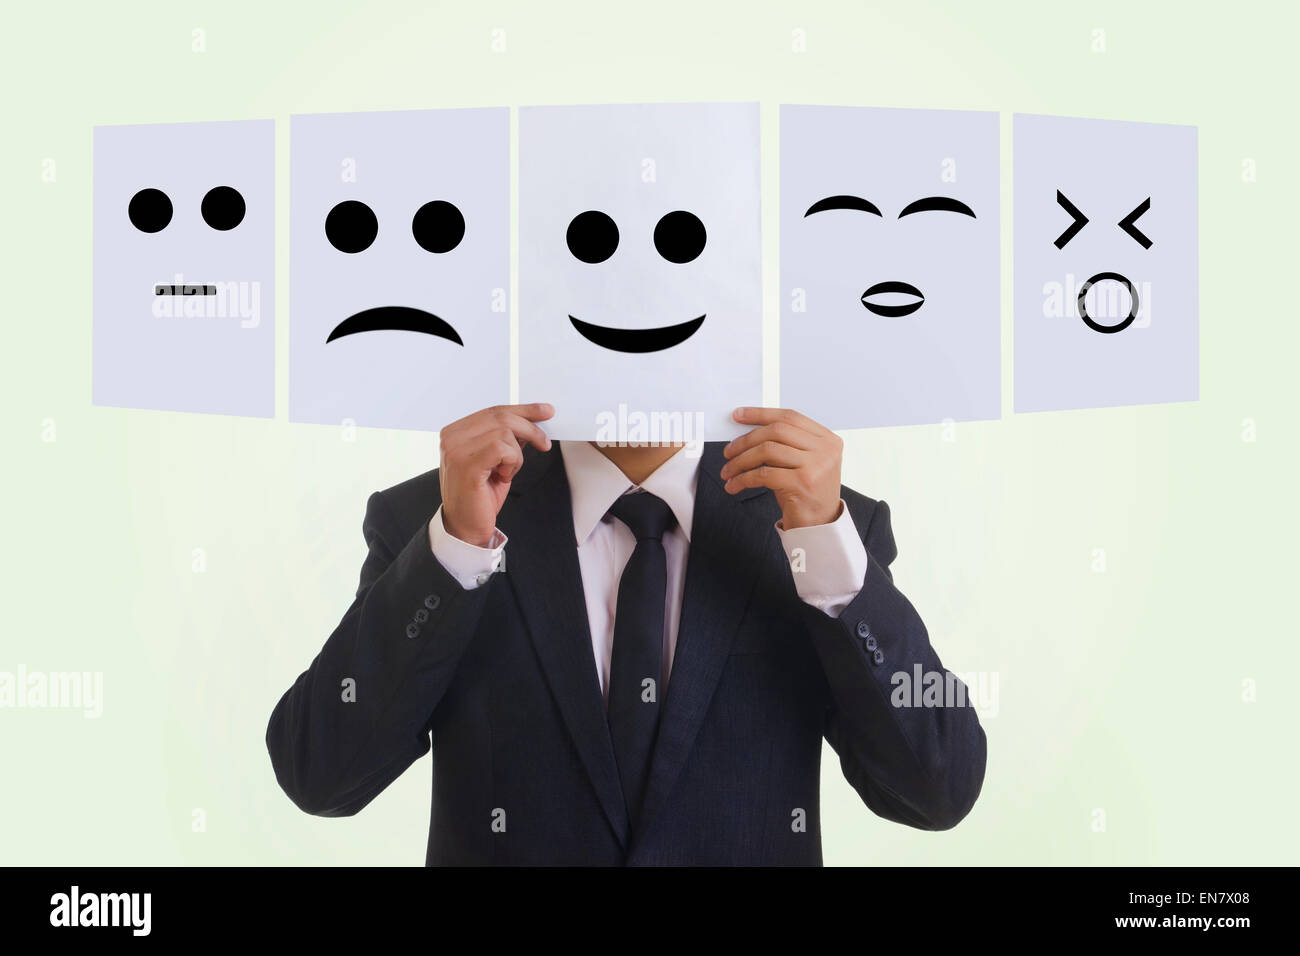 Businessman holding various emoticons - Stock Image